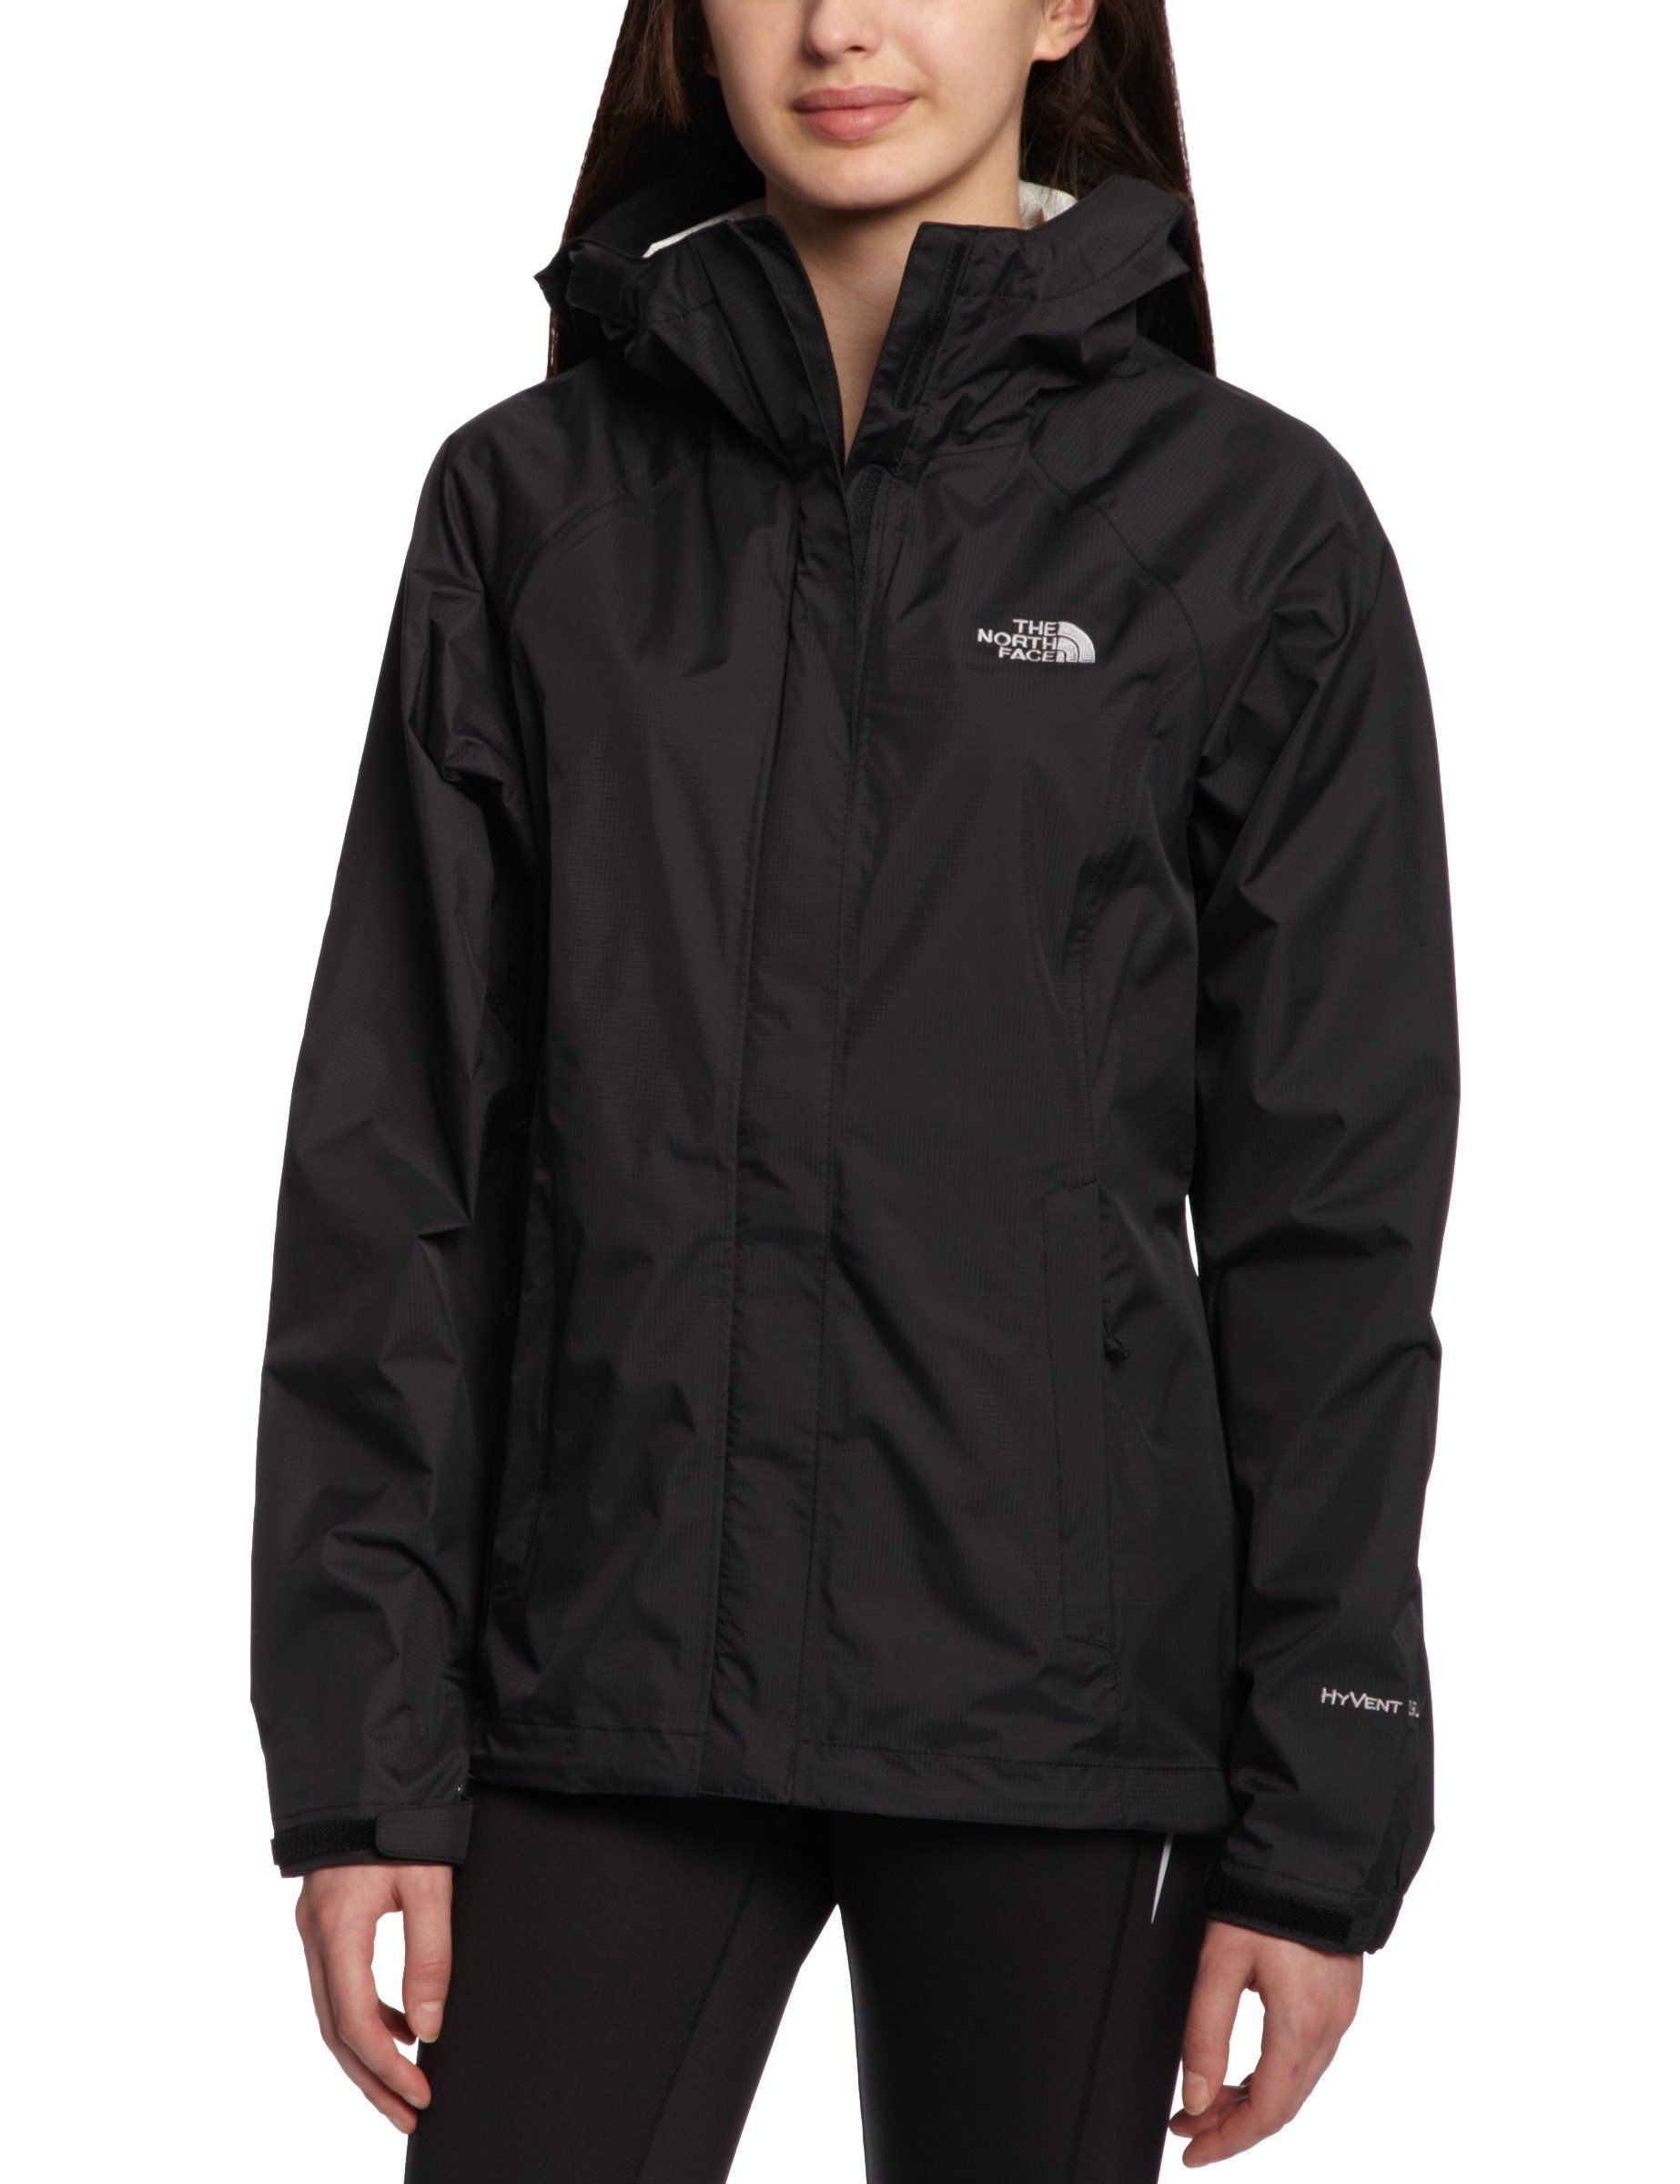 ffeae3f9c94b1 The North Face - Chaqueta para mujer